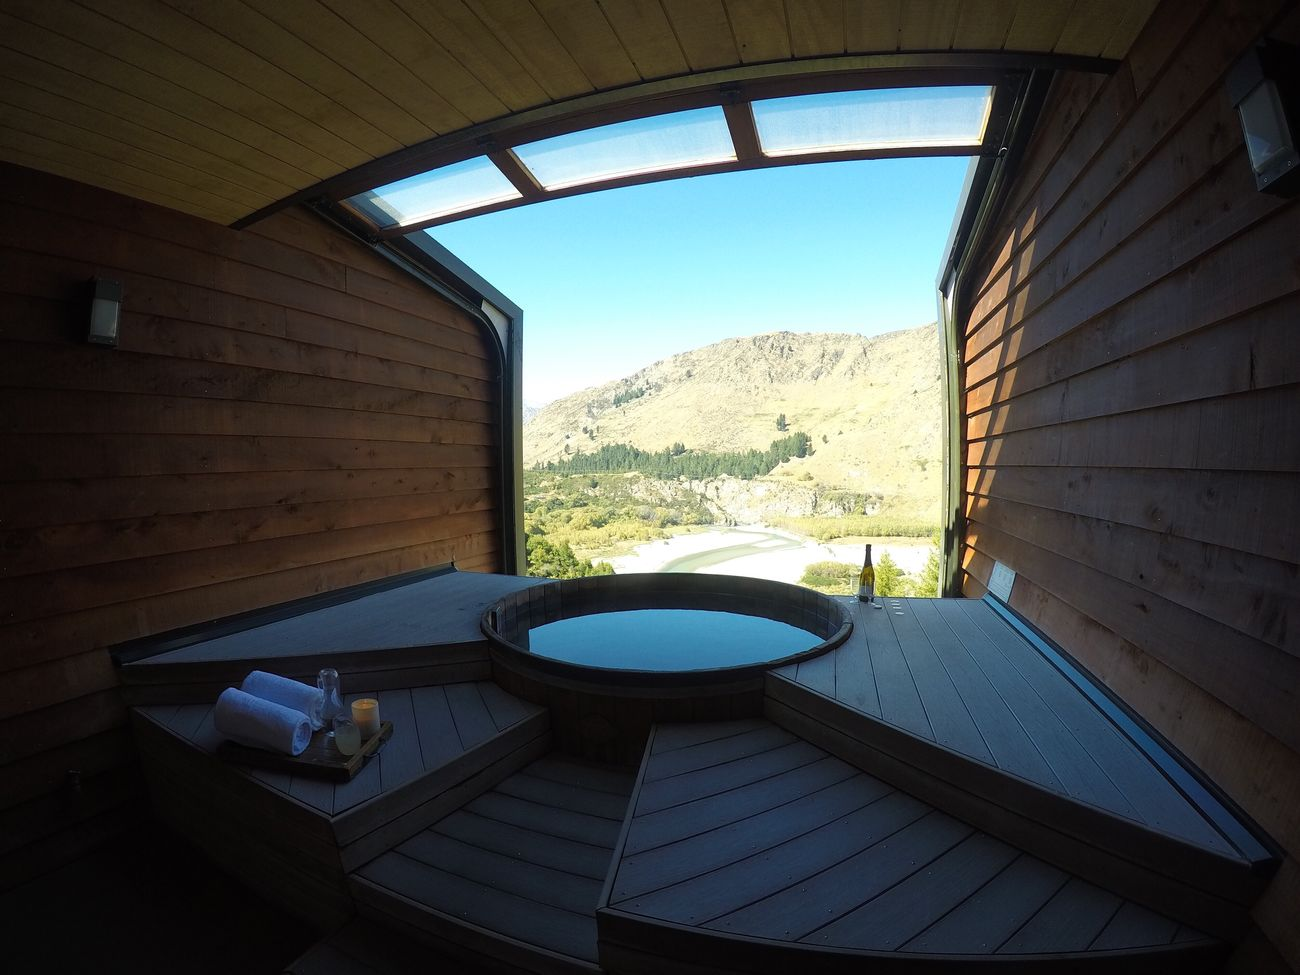 Spa days Clear Sky Sky Fish-eye Lens Pool Relaxing Chilling Calm Tranquility Travel Destinations Onsen